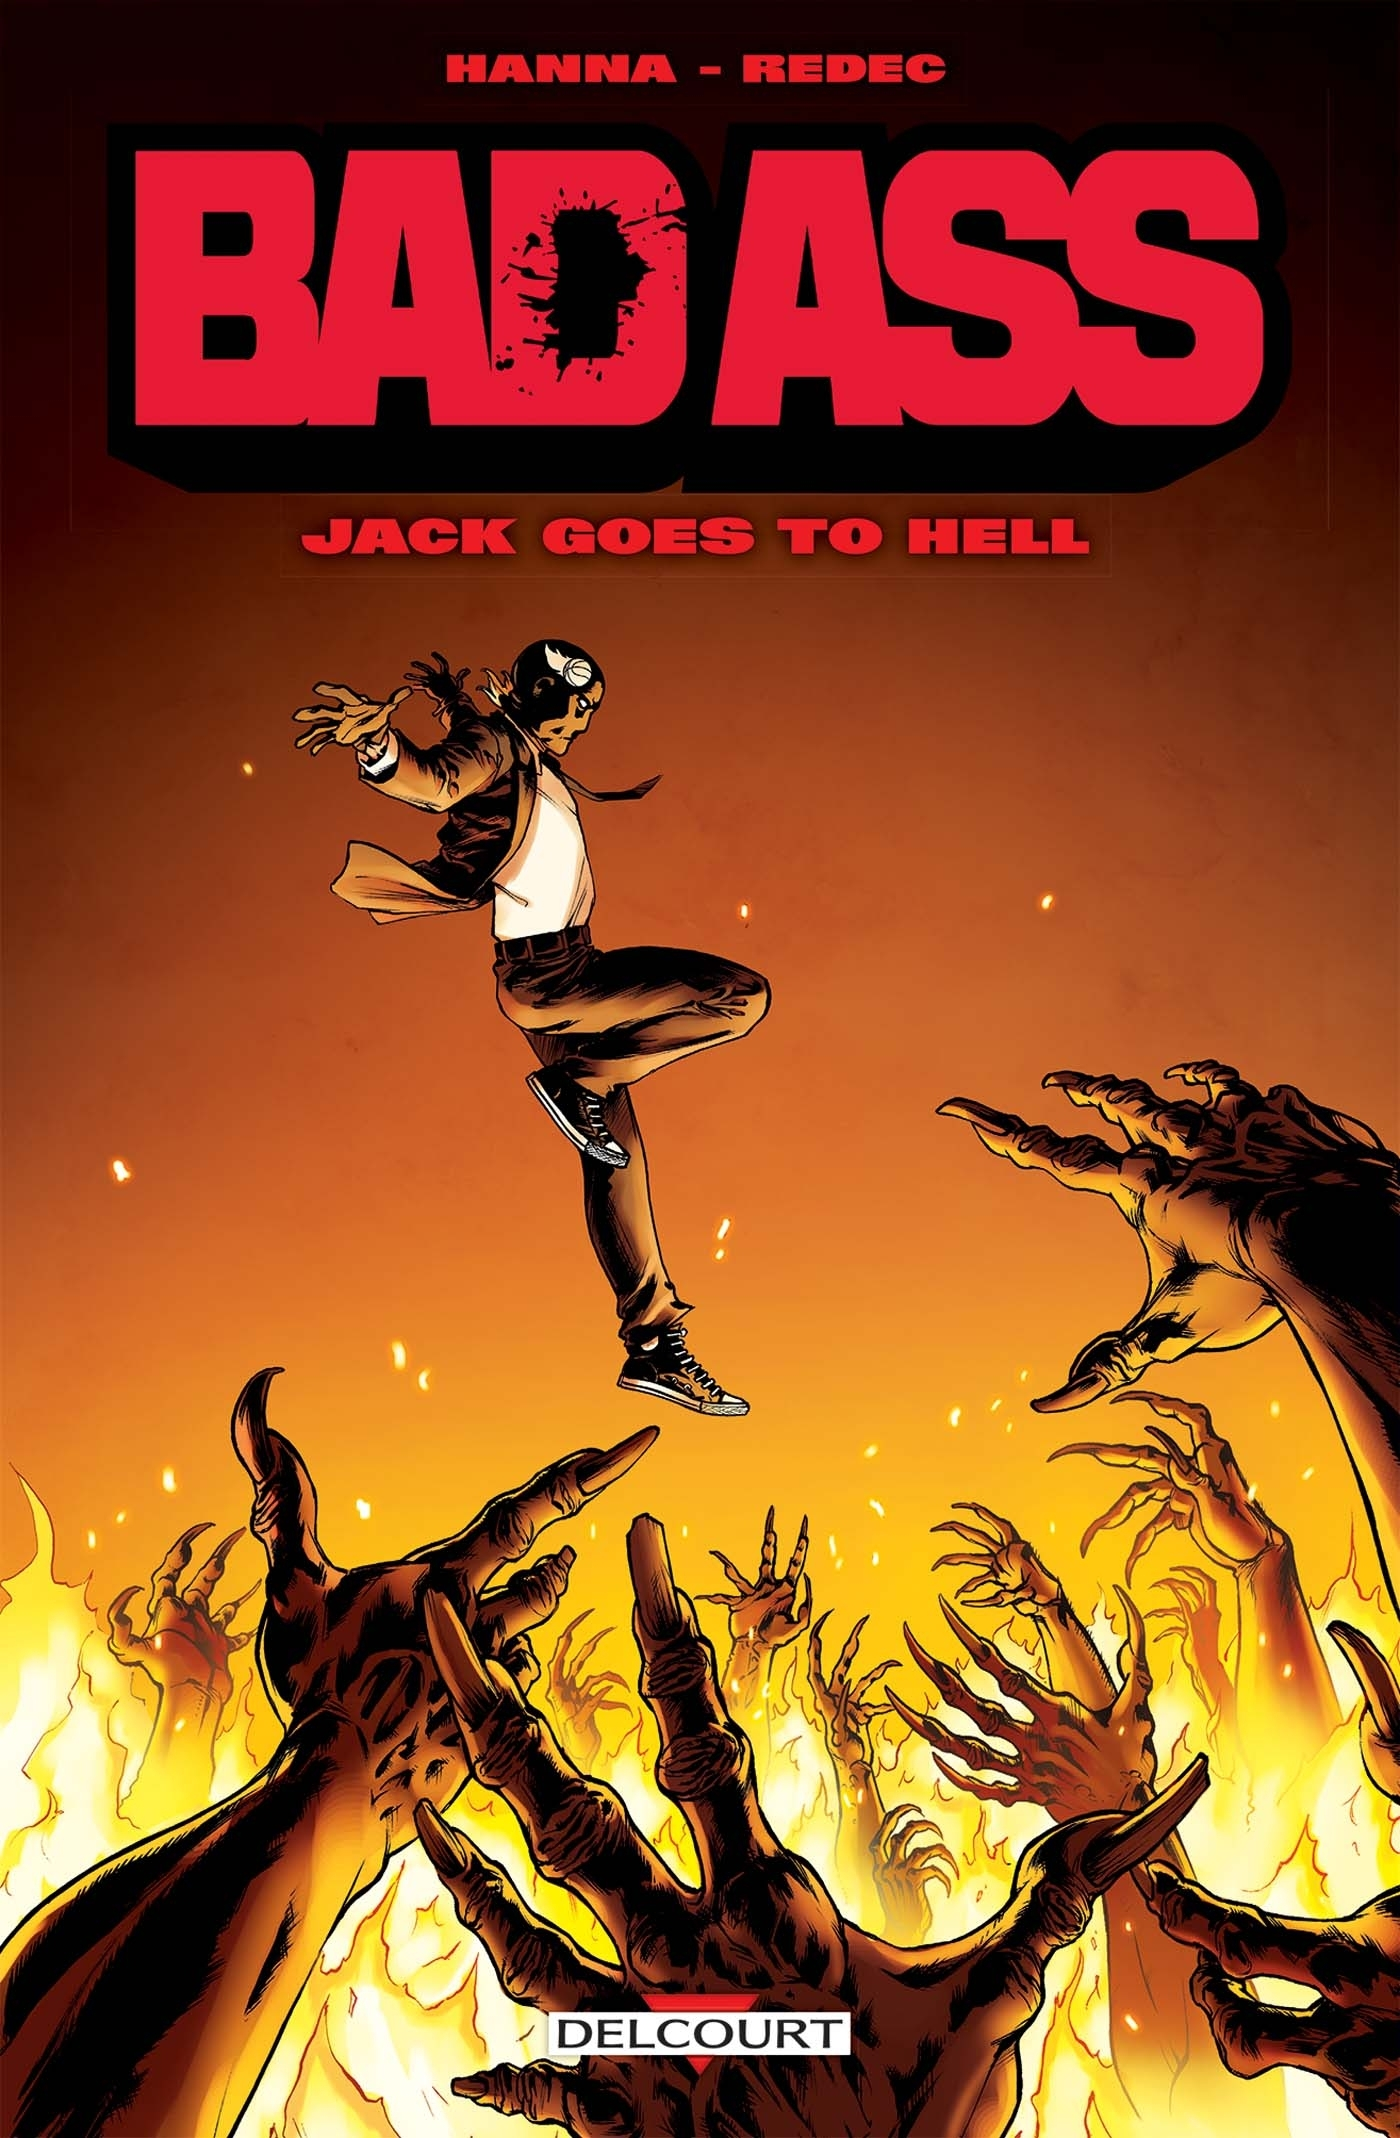 BAD ASS - JACK GOES TO HELL